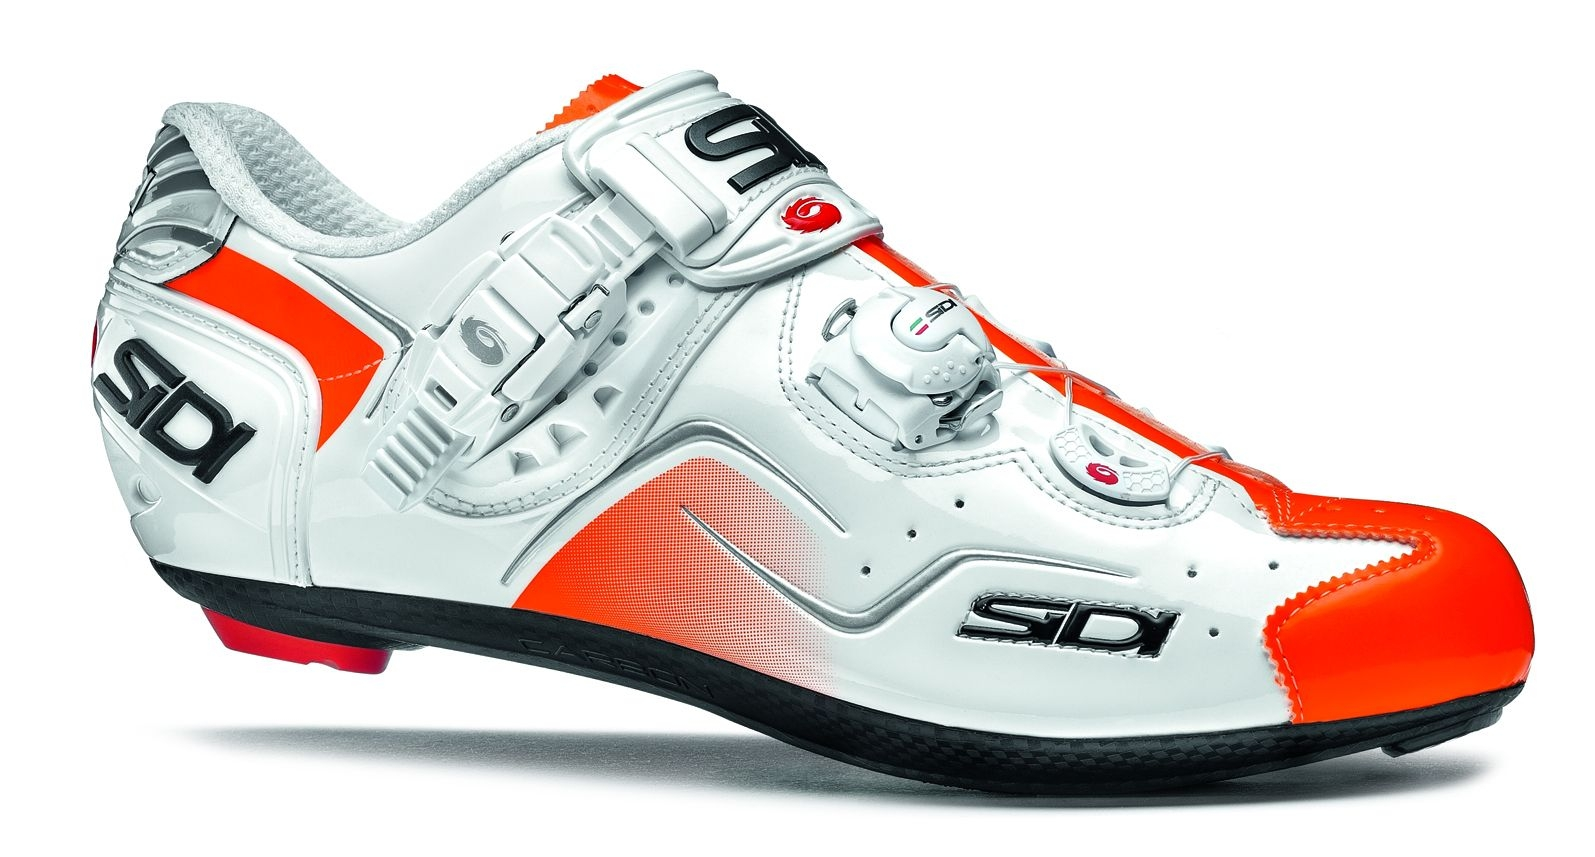 Chaussures Sidi KAOS Blanc/Orange verni - 42